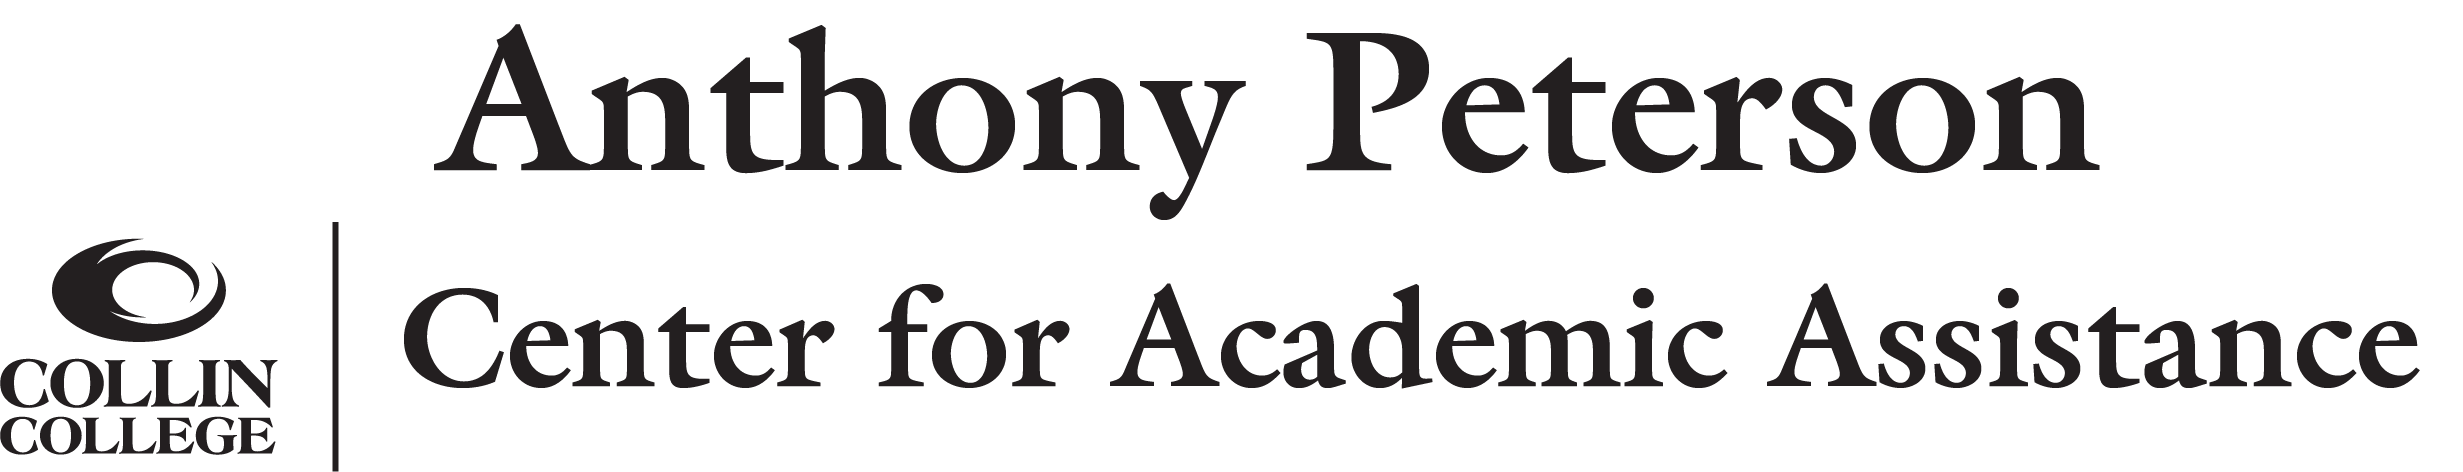 Anthony Peterson Center for Academic Assistance